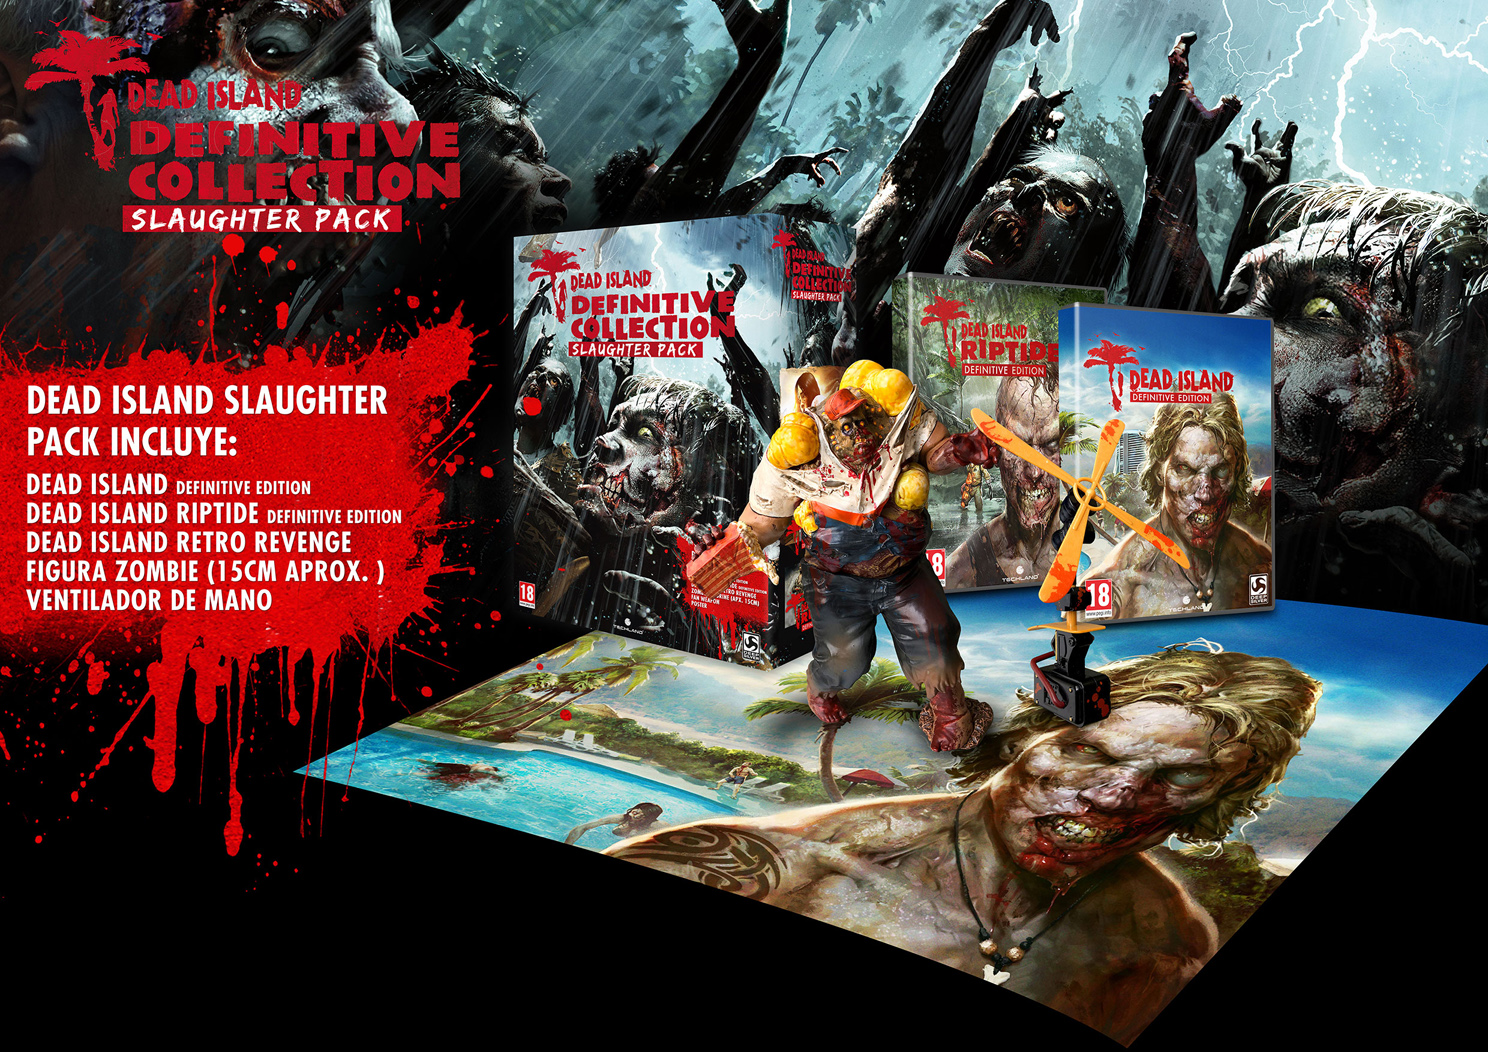 Dead Island Collection Slaughter Pack llega mañana a PlayStation 4